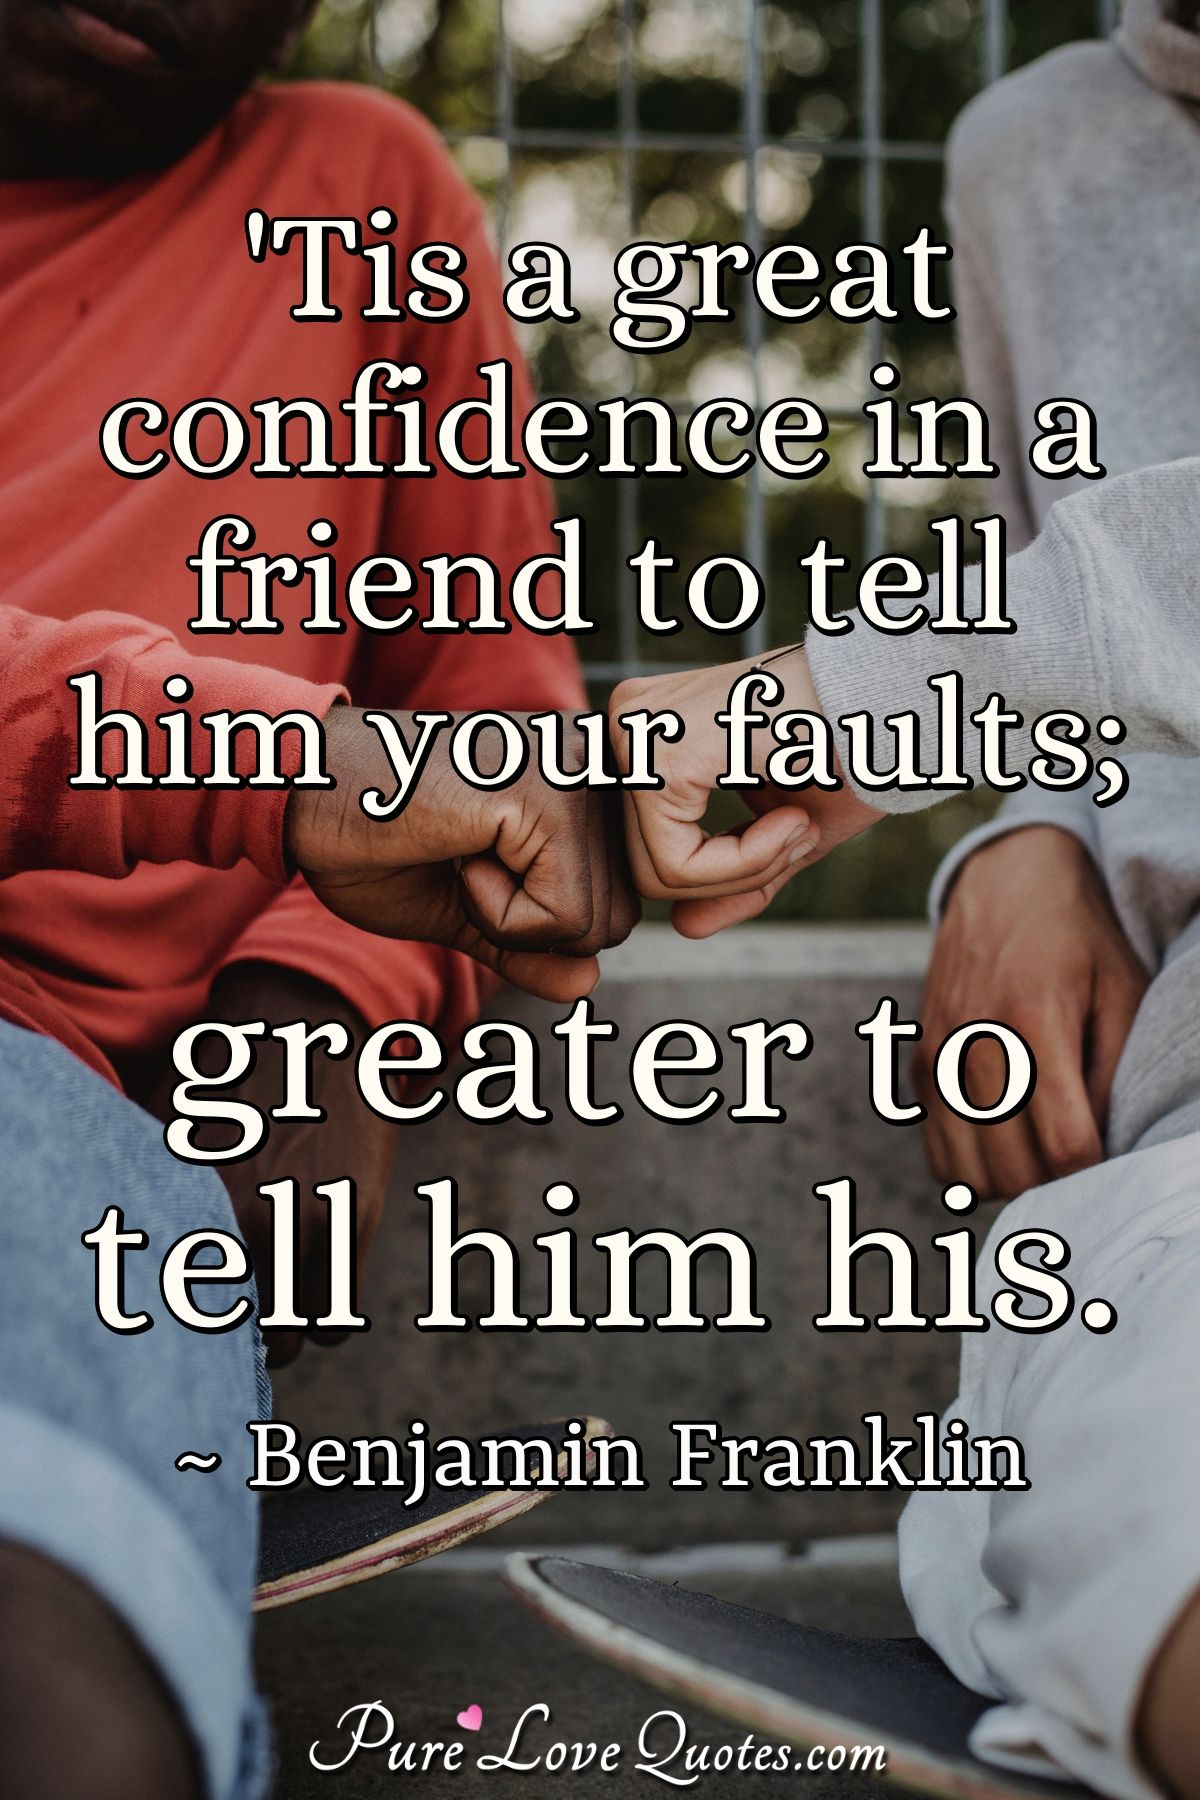 'Tis a great confidence in a friend to tell him your faults; greater to tell him his. - Benjamin Franklin